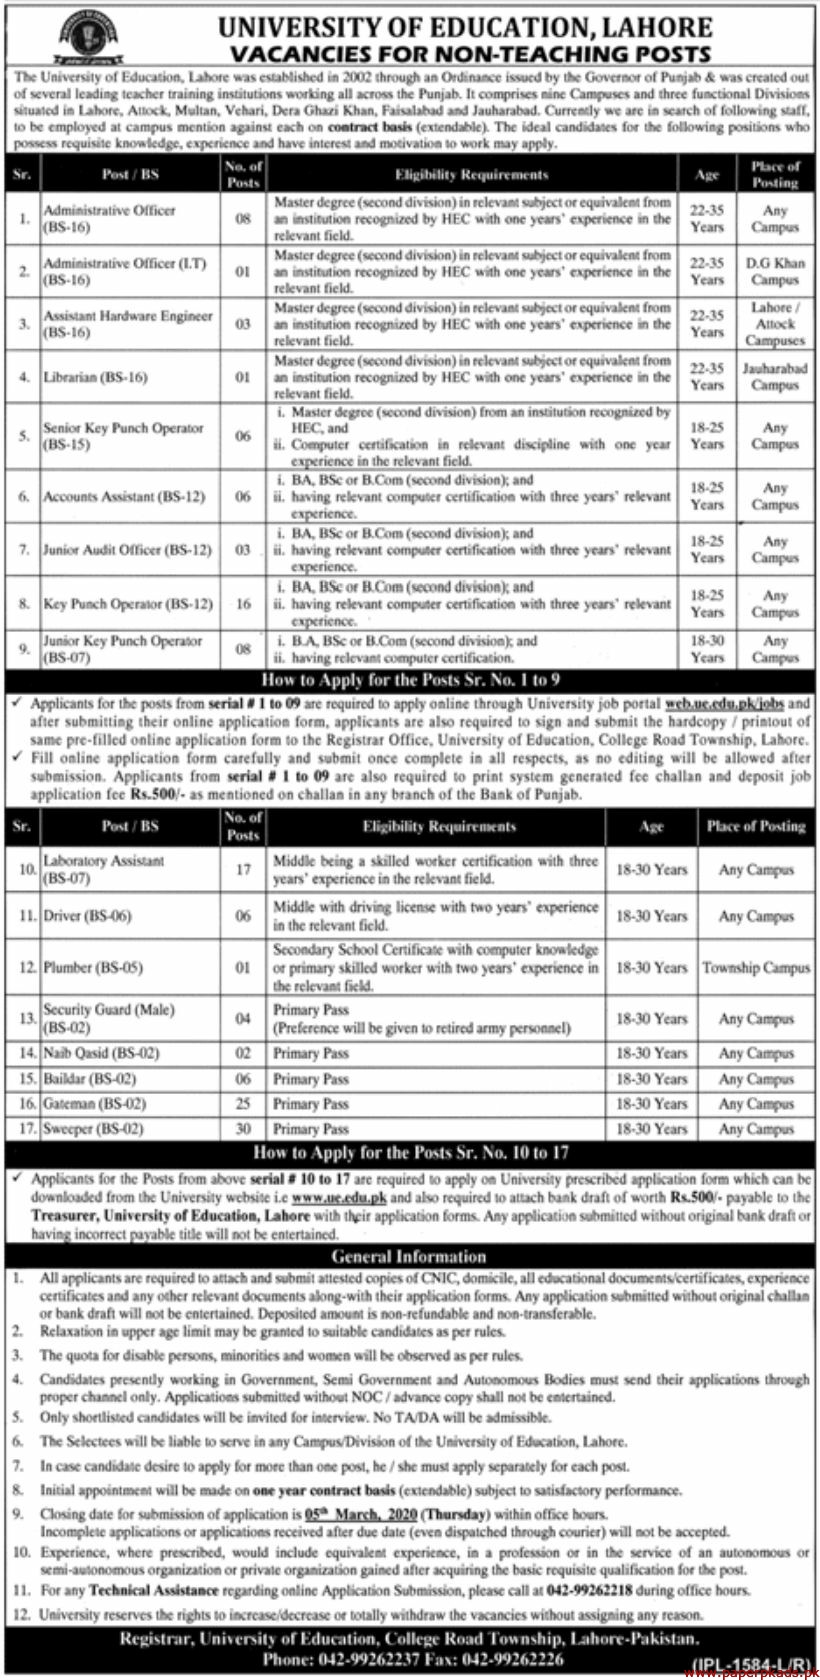 University of Education Lahore Jobs 2020 Latest